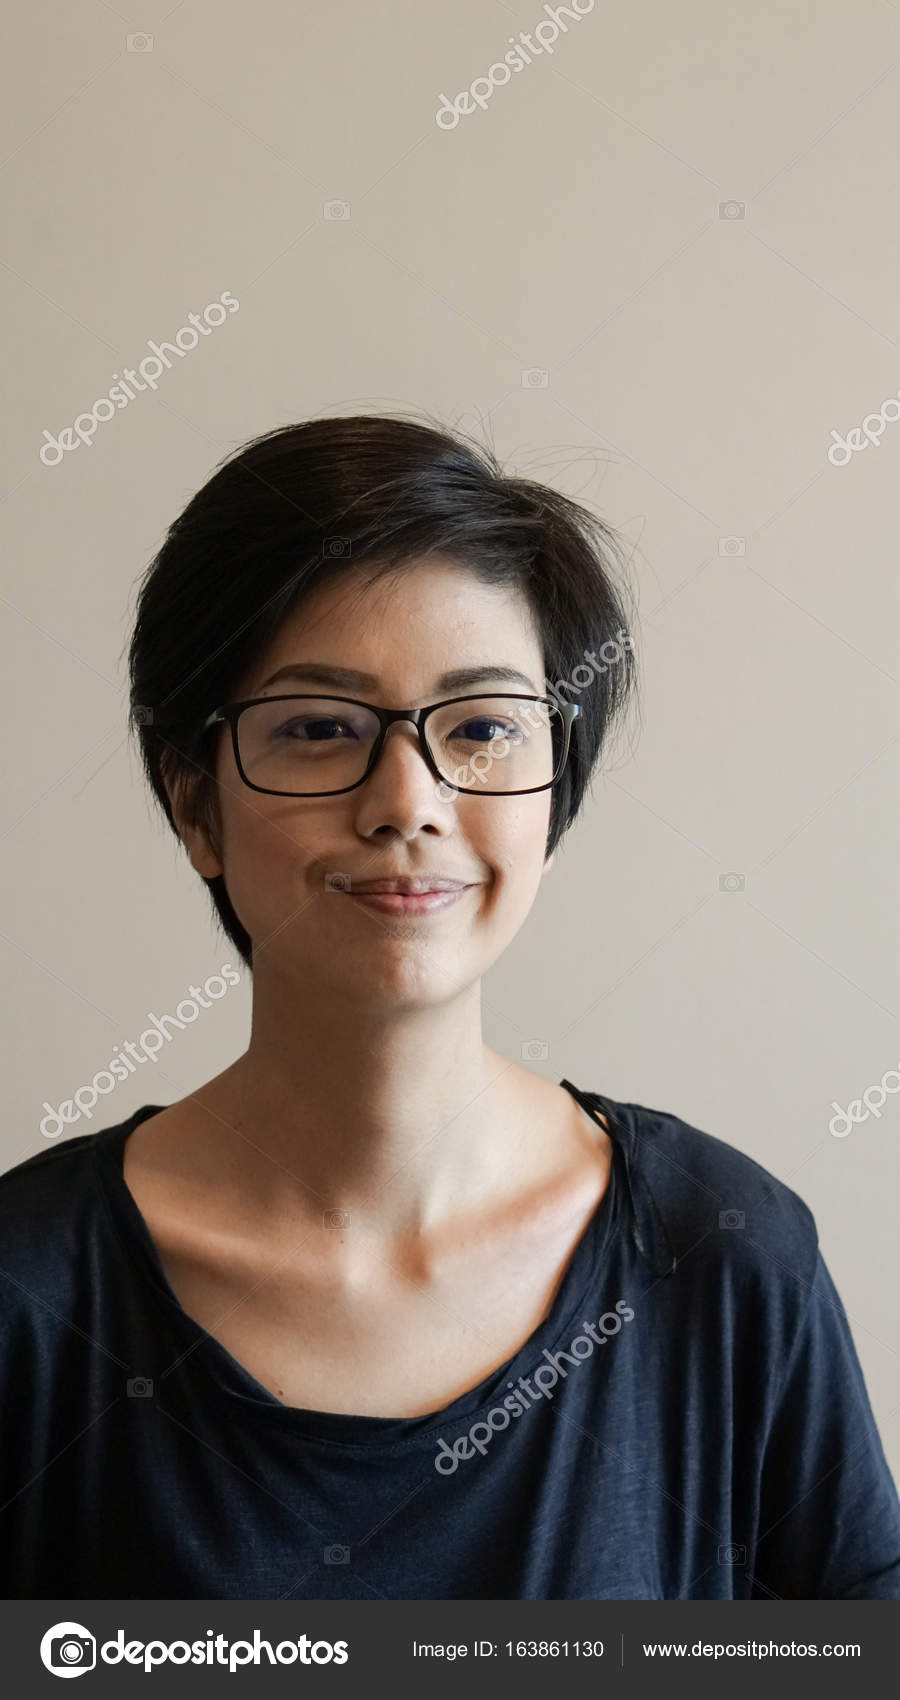 Asian Woman With Short Hair And Glasses On Color Background